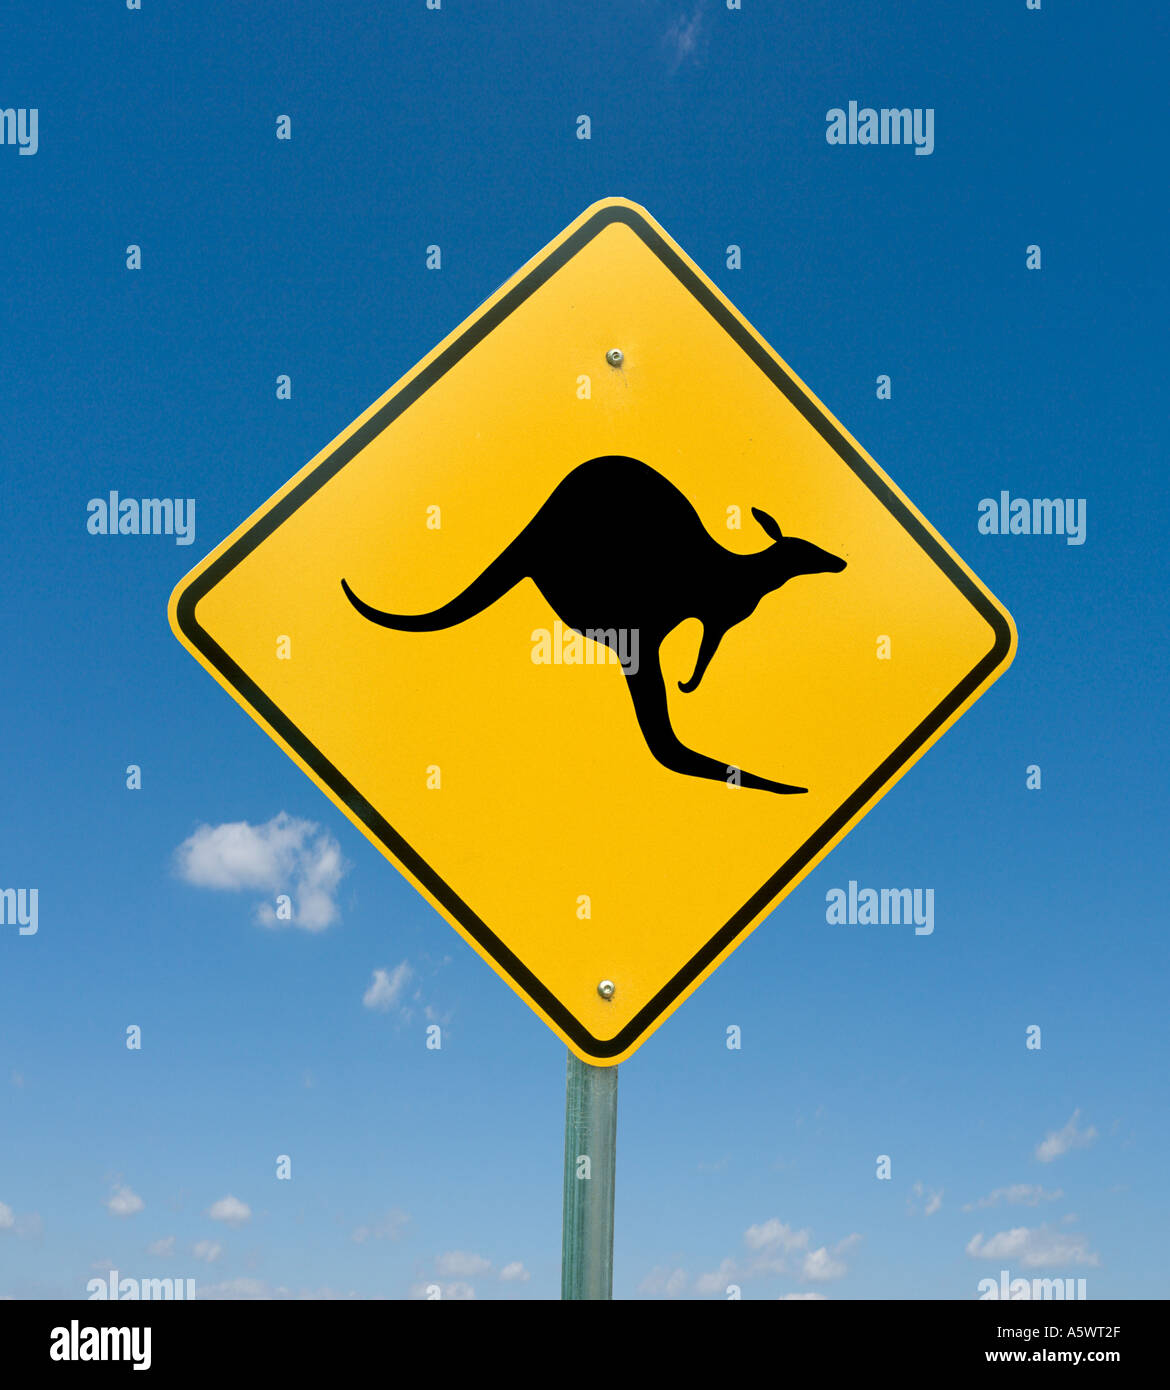 Kangaroo road sign on a country road in New South Wales, Australia - Stock Image